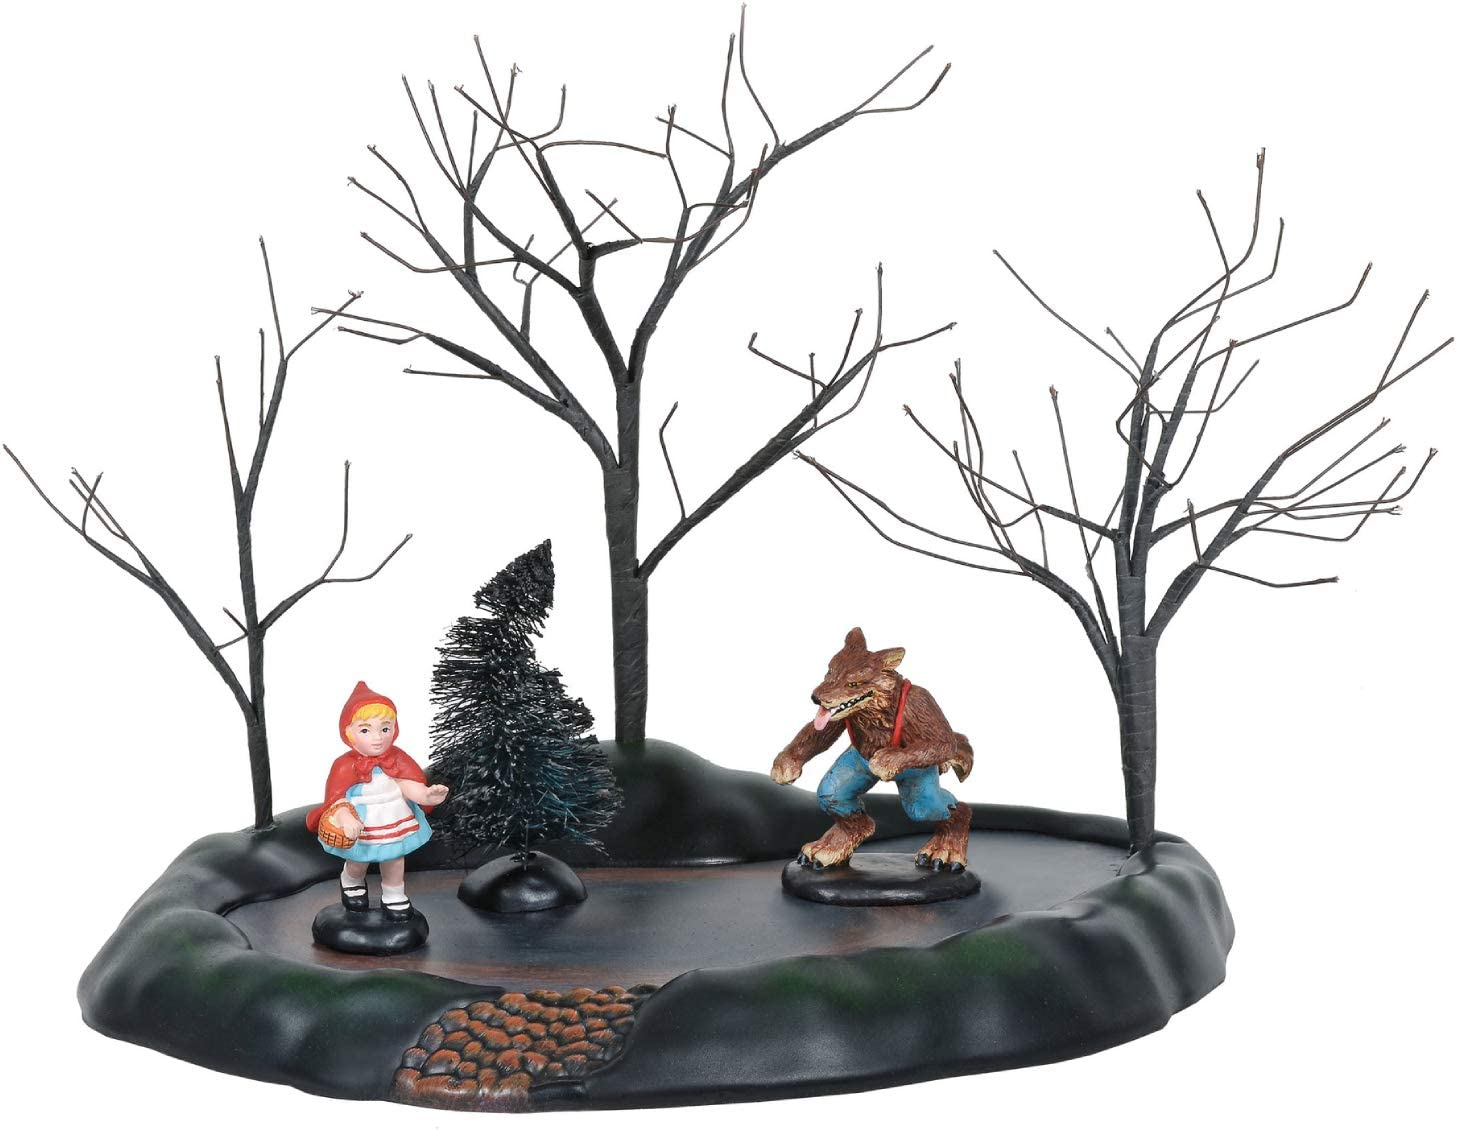 Department 56 Village Collection Accessories Halloween Little Red Riding Hood Animated Figurine Set, 8.5 Inch, Multicolor